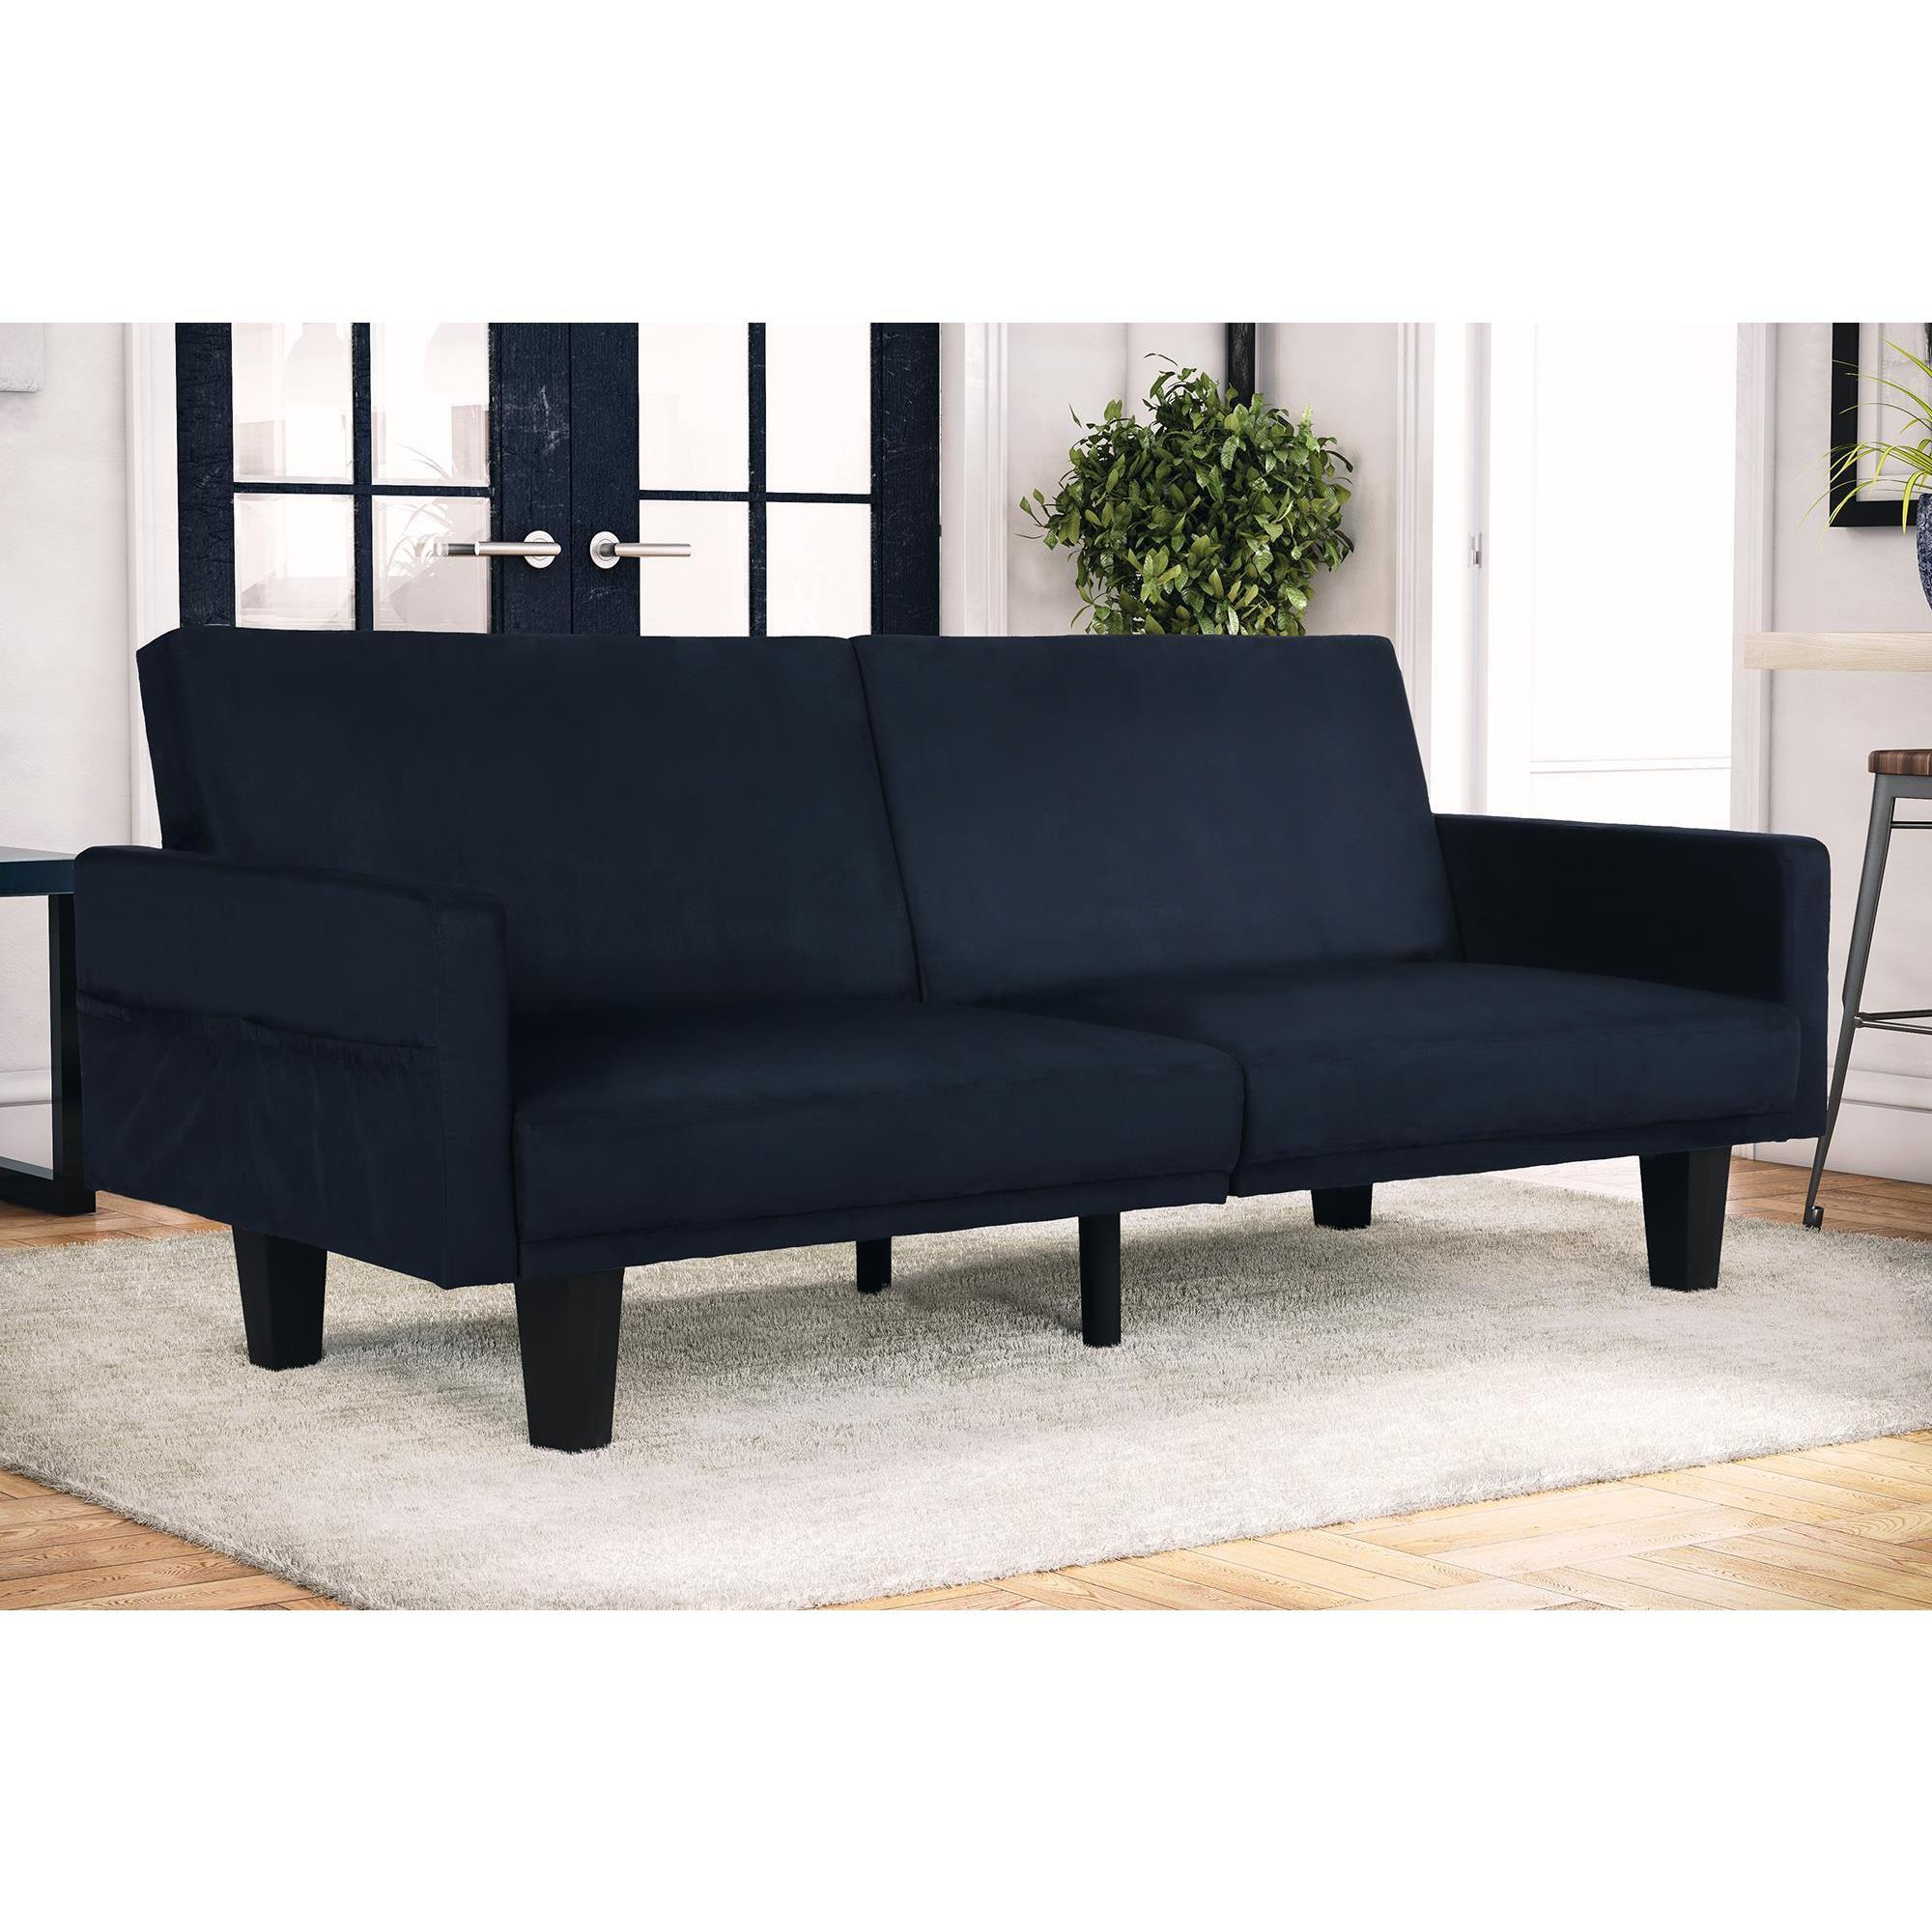 Dhp Metro Navy Blue Microfiber Futon With Storage Pockets On Free Shipping Today Com 12023079